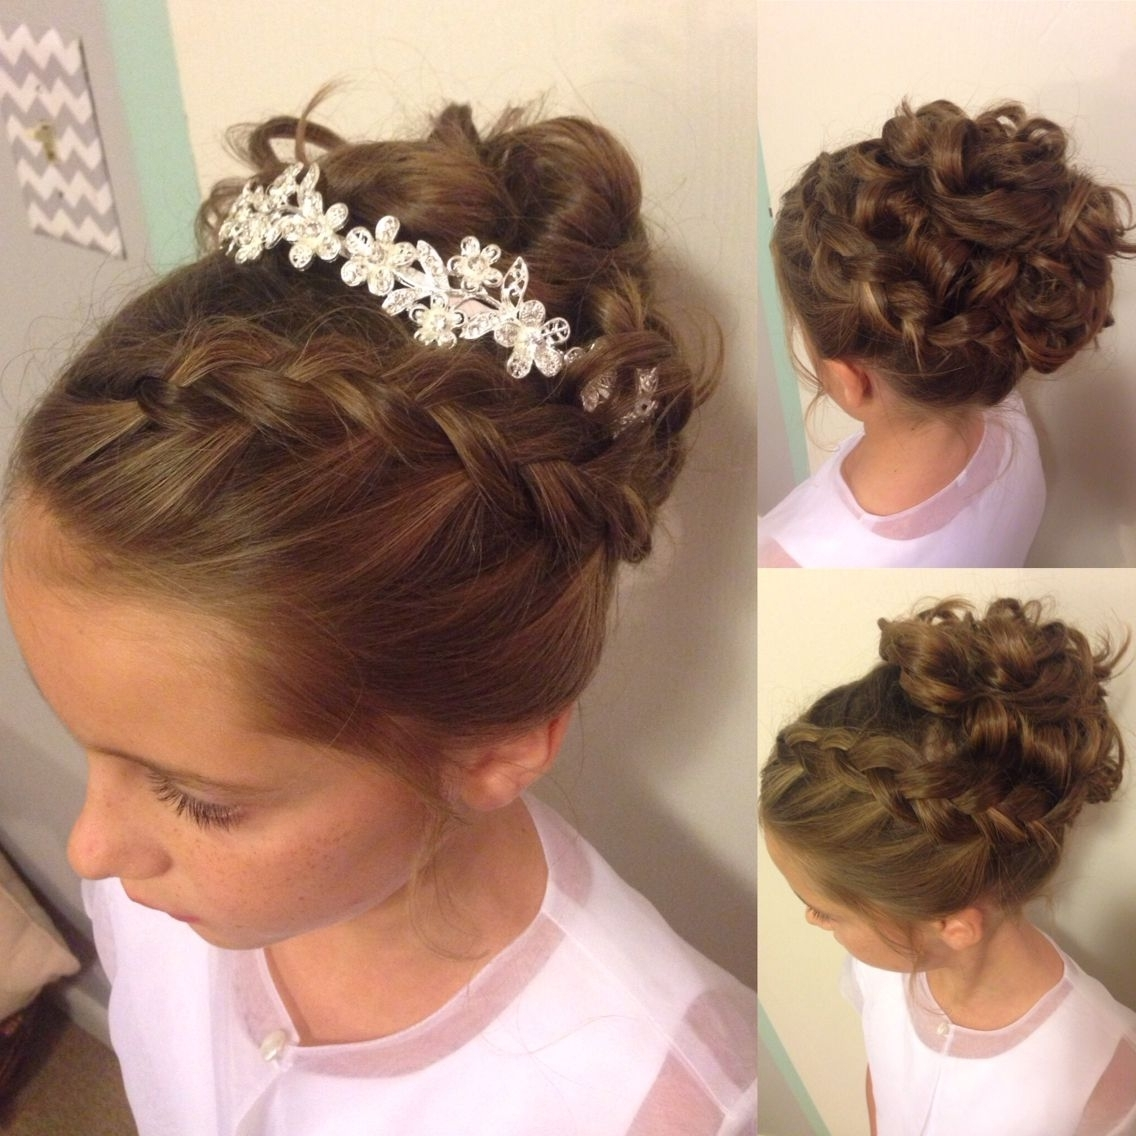 Pinmary Rose On My Work | Pinterest | Updo, Weddings And Girls With Regard To Updo Hairstyles For Little Girl With Short Hair (View 13 of 15)